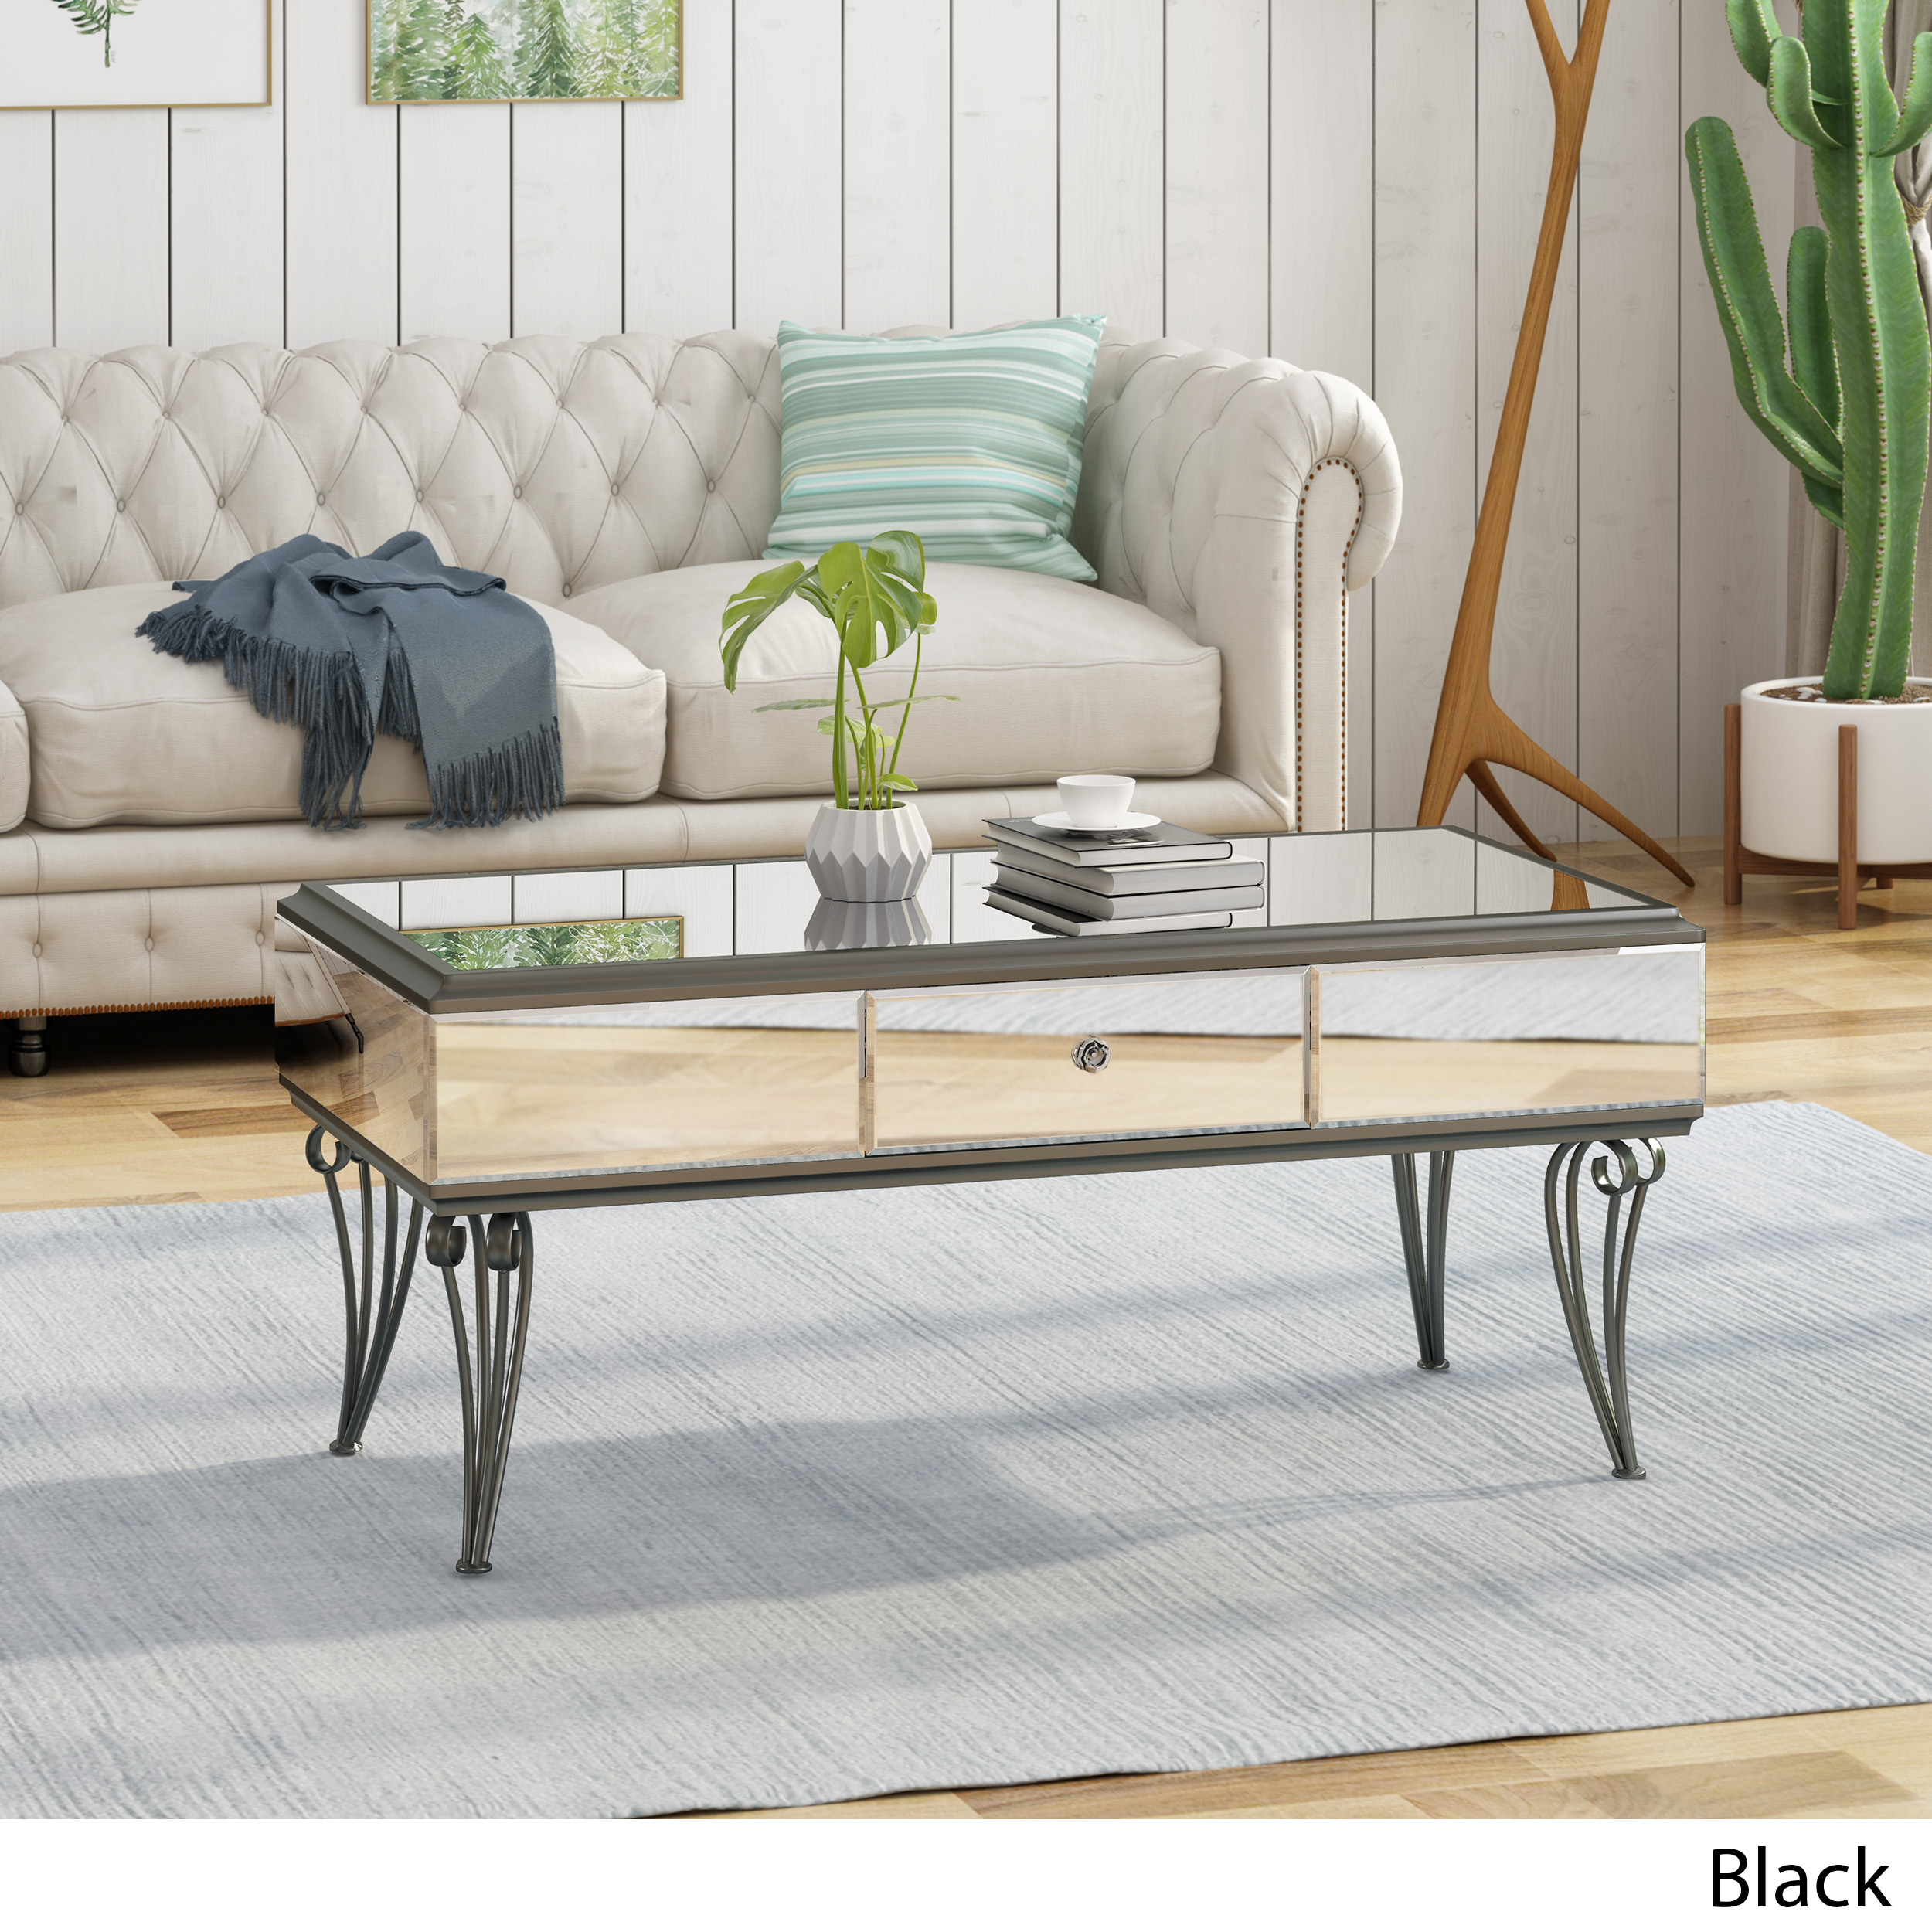 Details About Ophelia Modern Mirrored Coffee Table With Drawer Tempered Glass